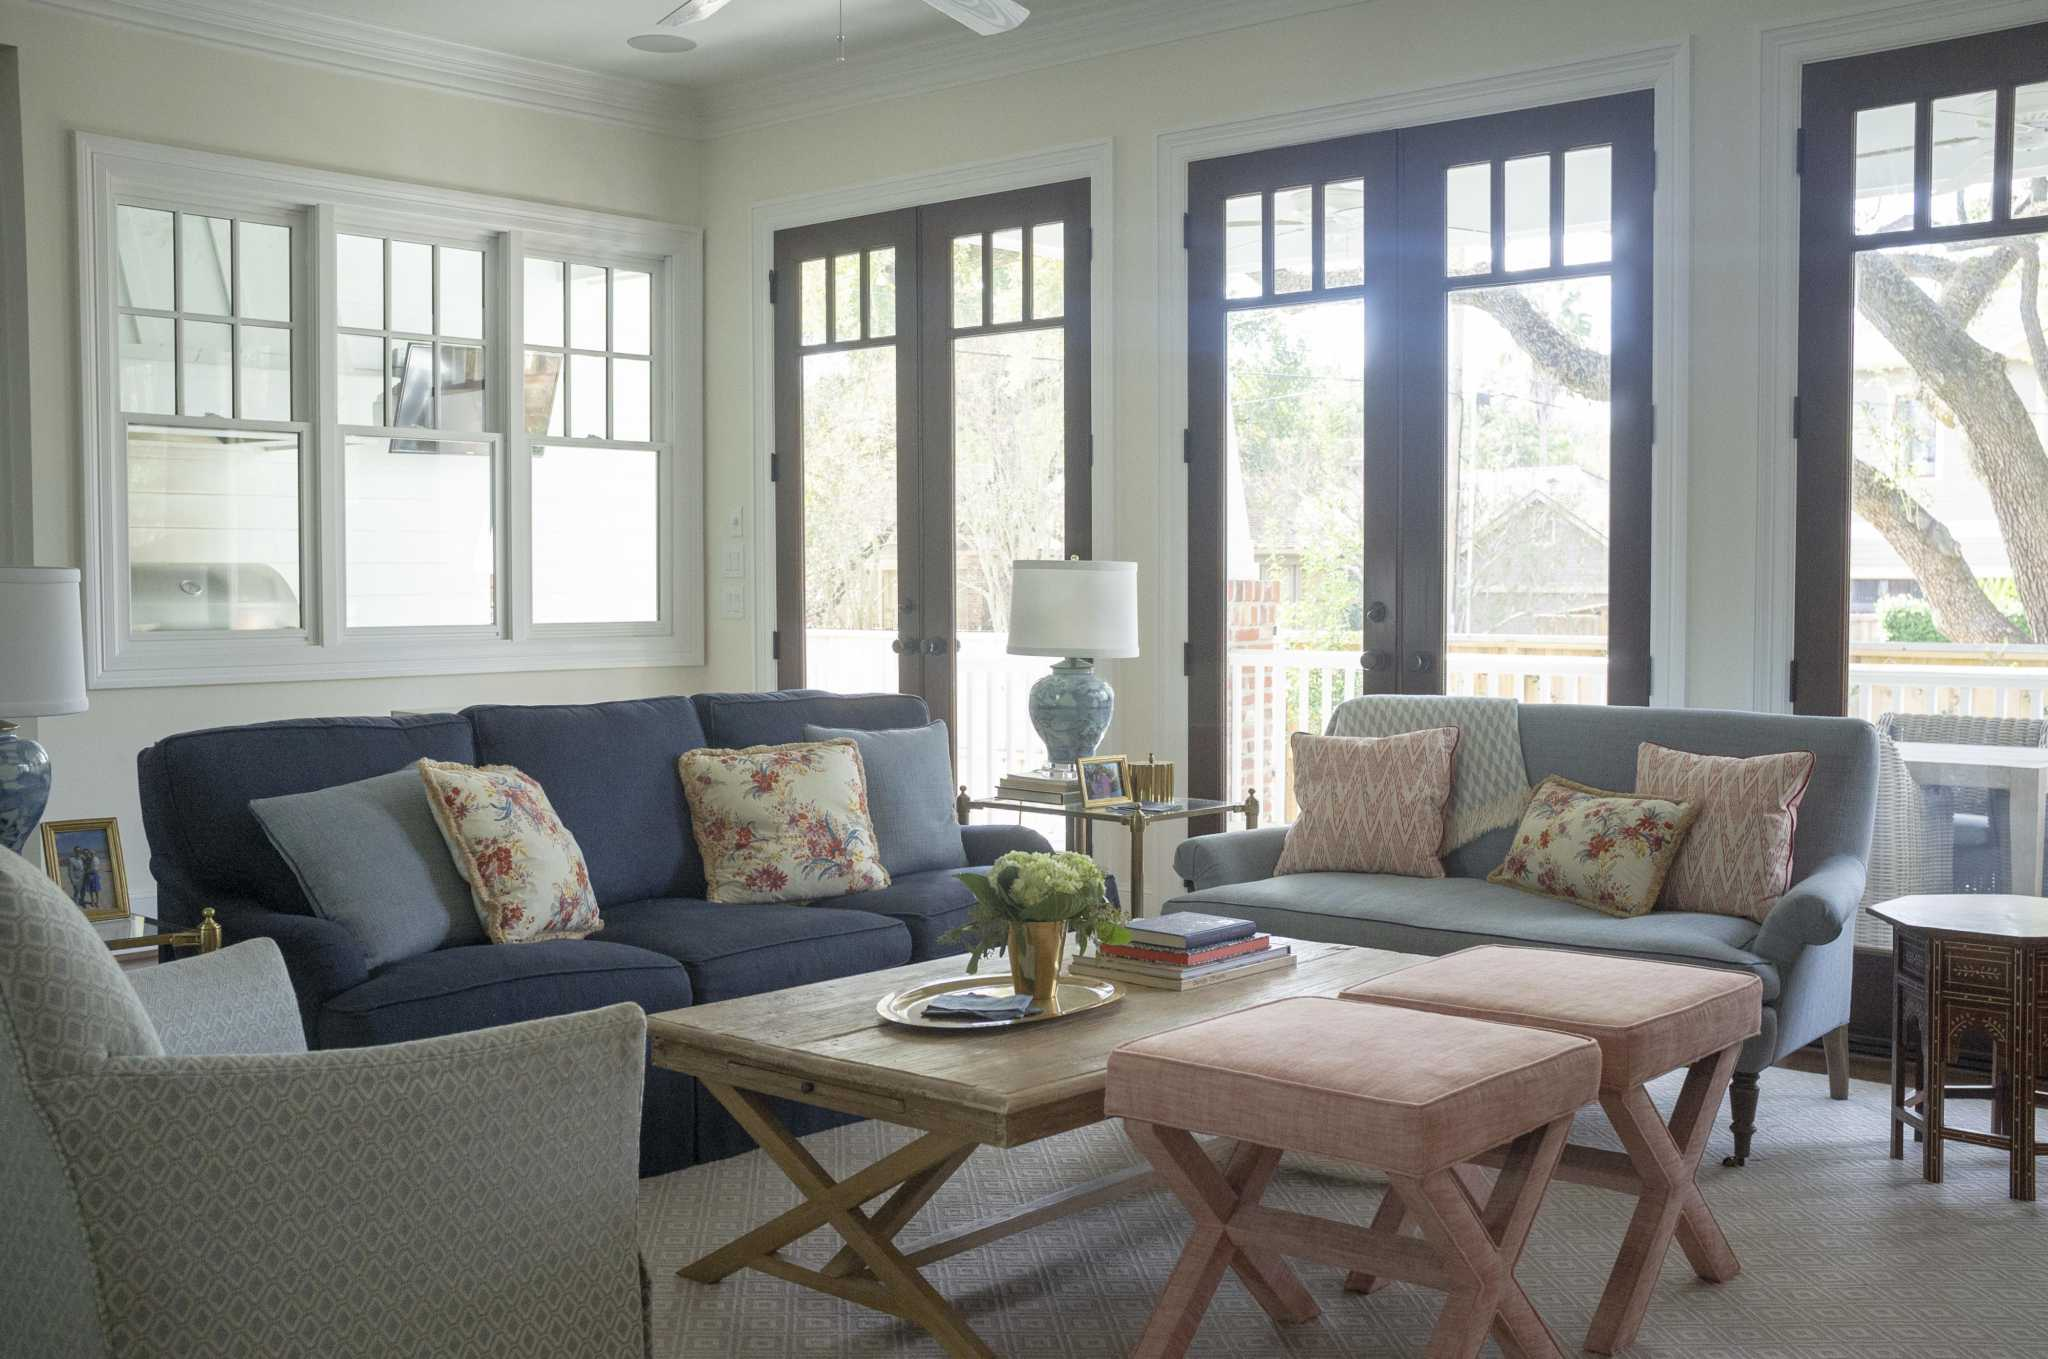 Heights couple turns small bungalow into 4,000-square-foot Craftsman-style home